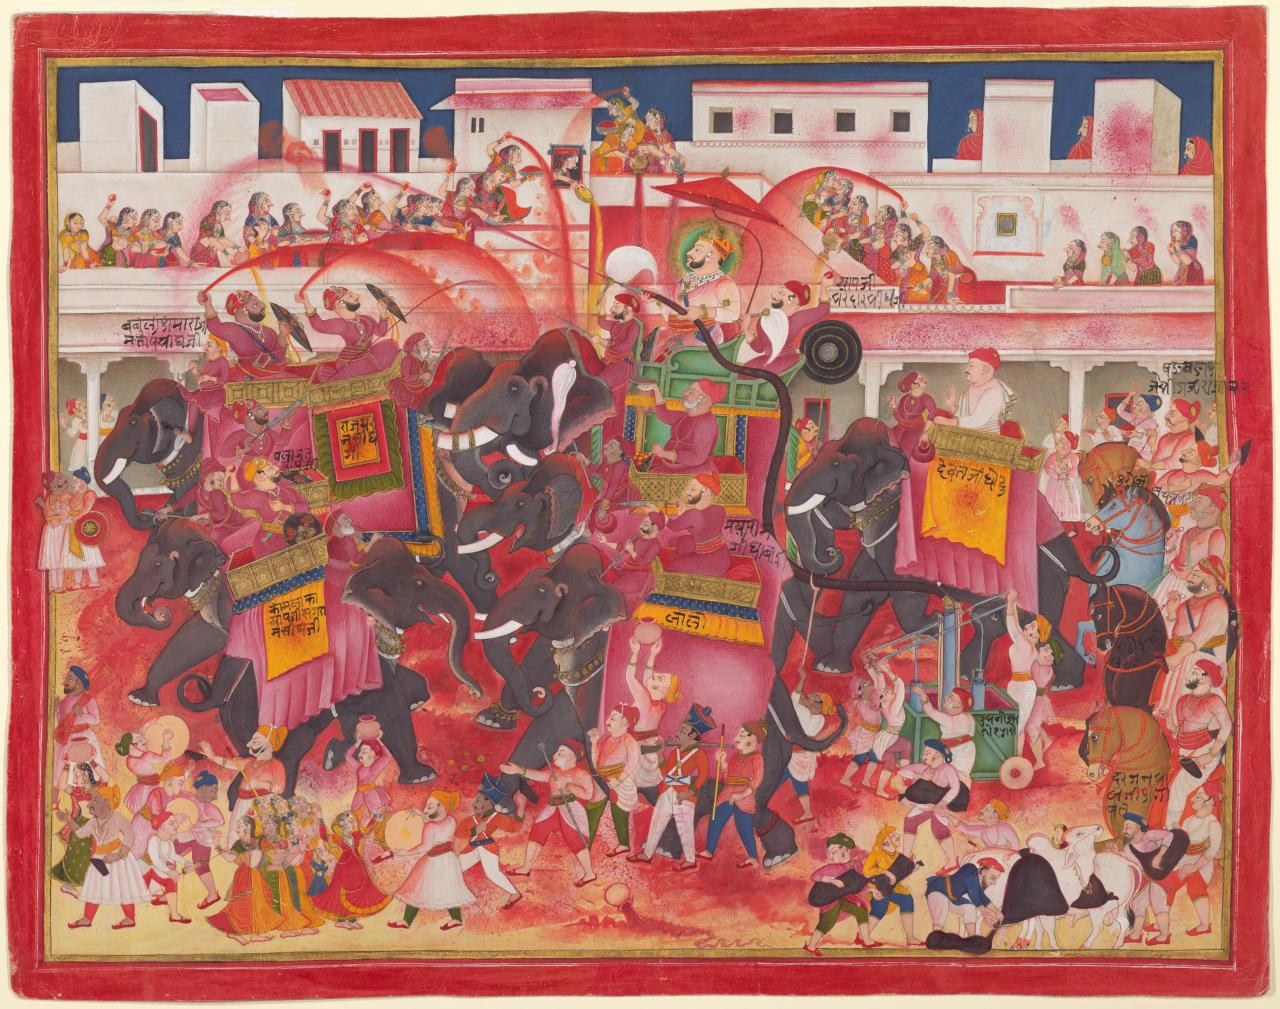 Maharao Ram Singh II of Kotah and companions playing Holi on elephants in a street